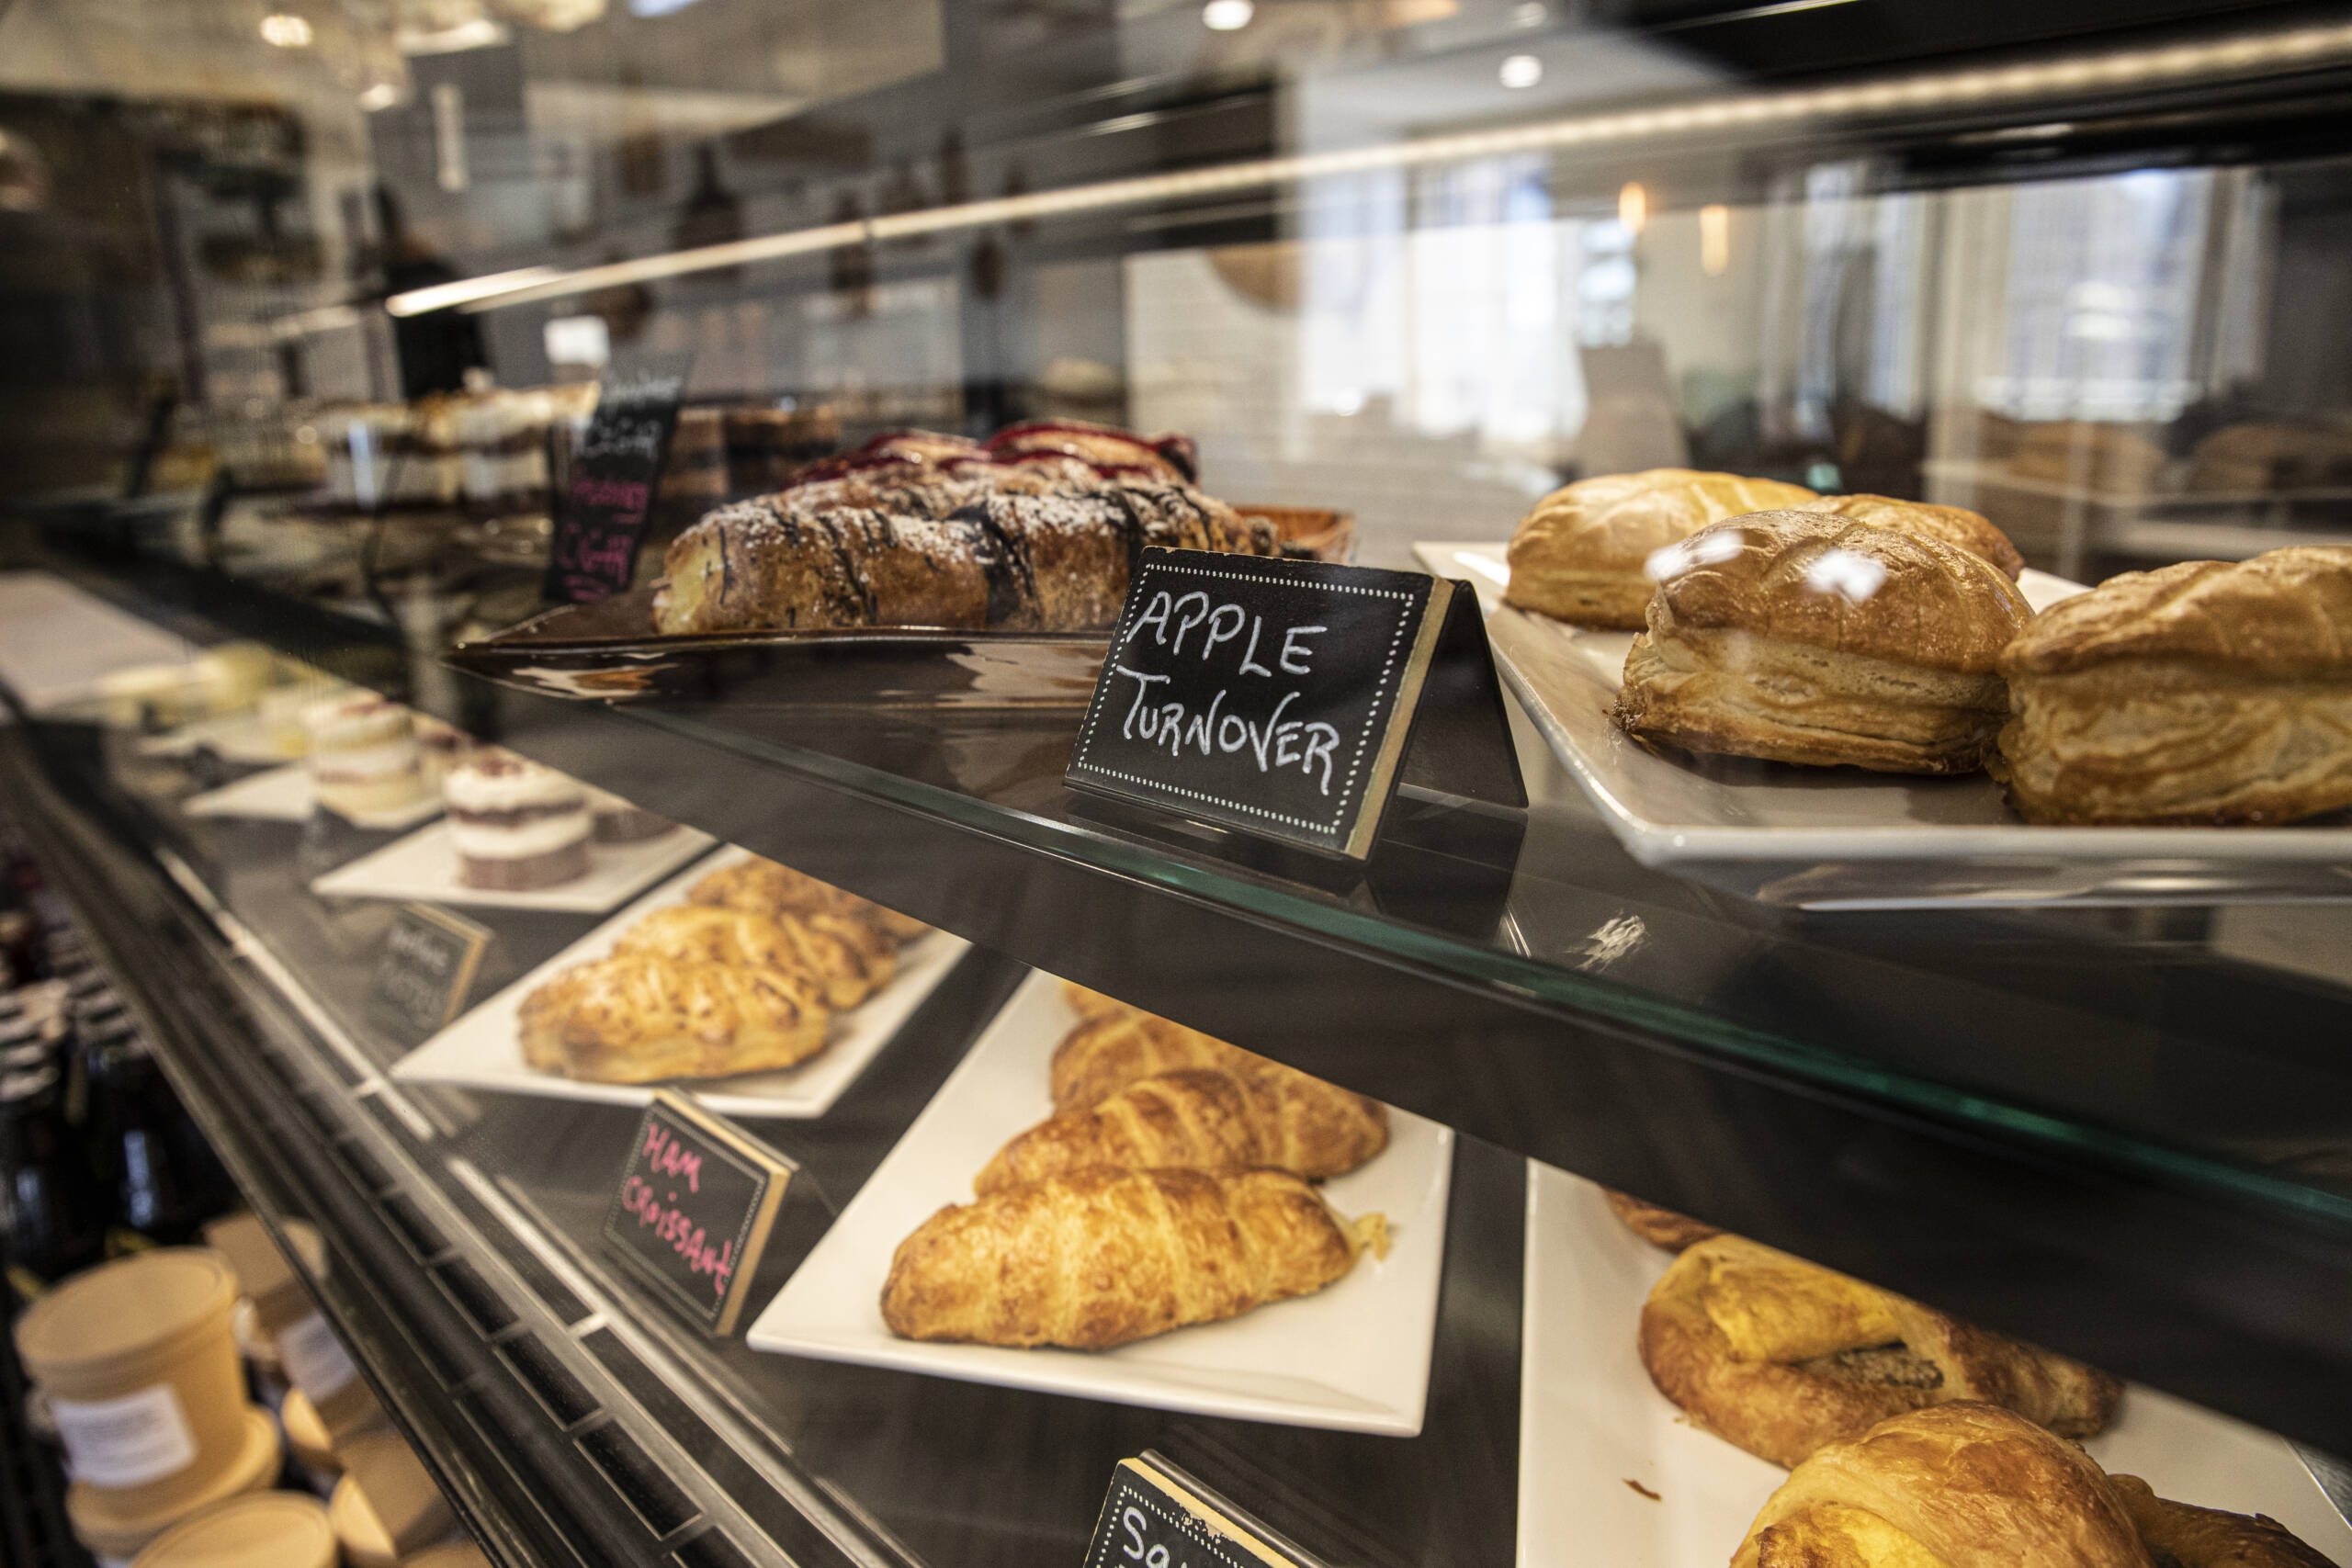 Pastry display with apple turnover sign